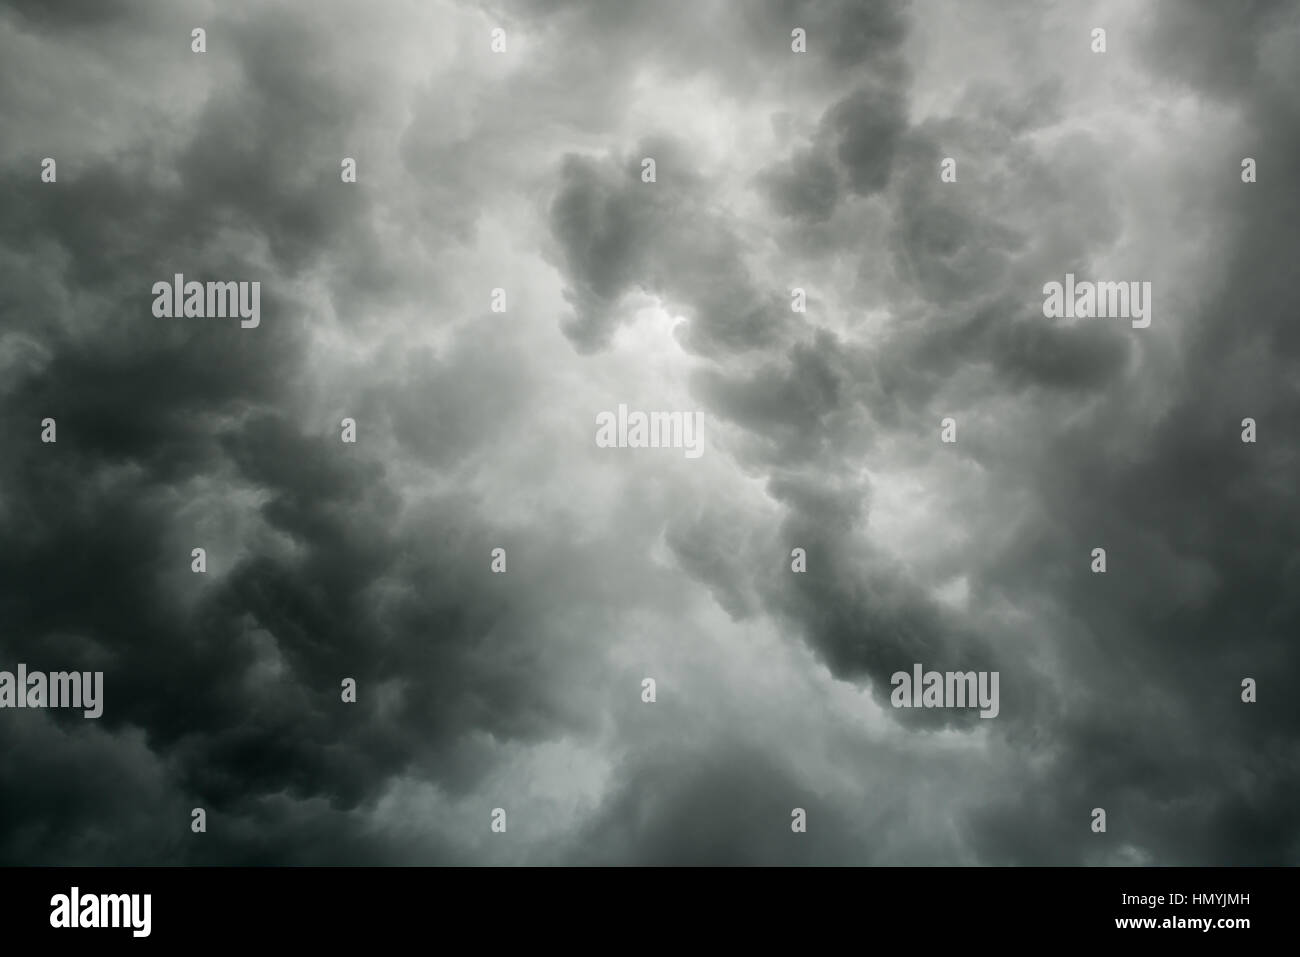 Cloudy stormy black and white dramatic sky background - Stock Image